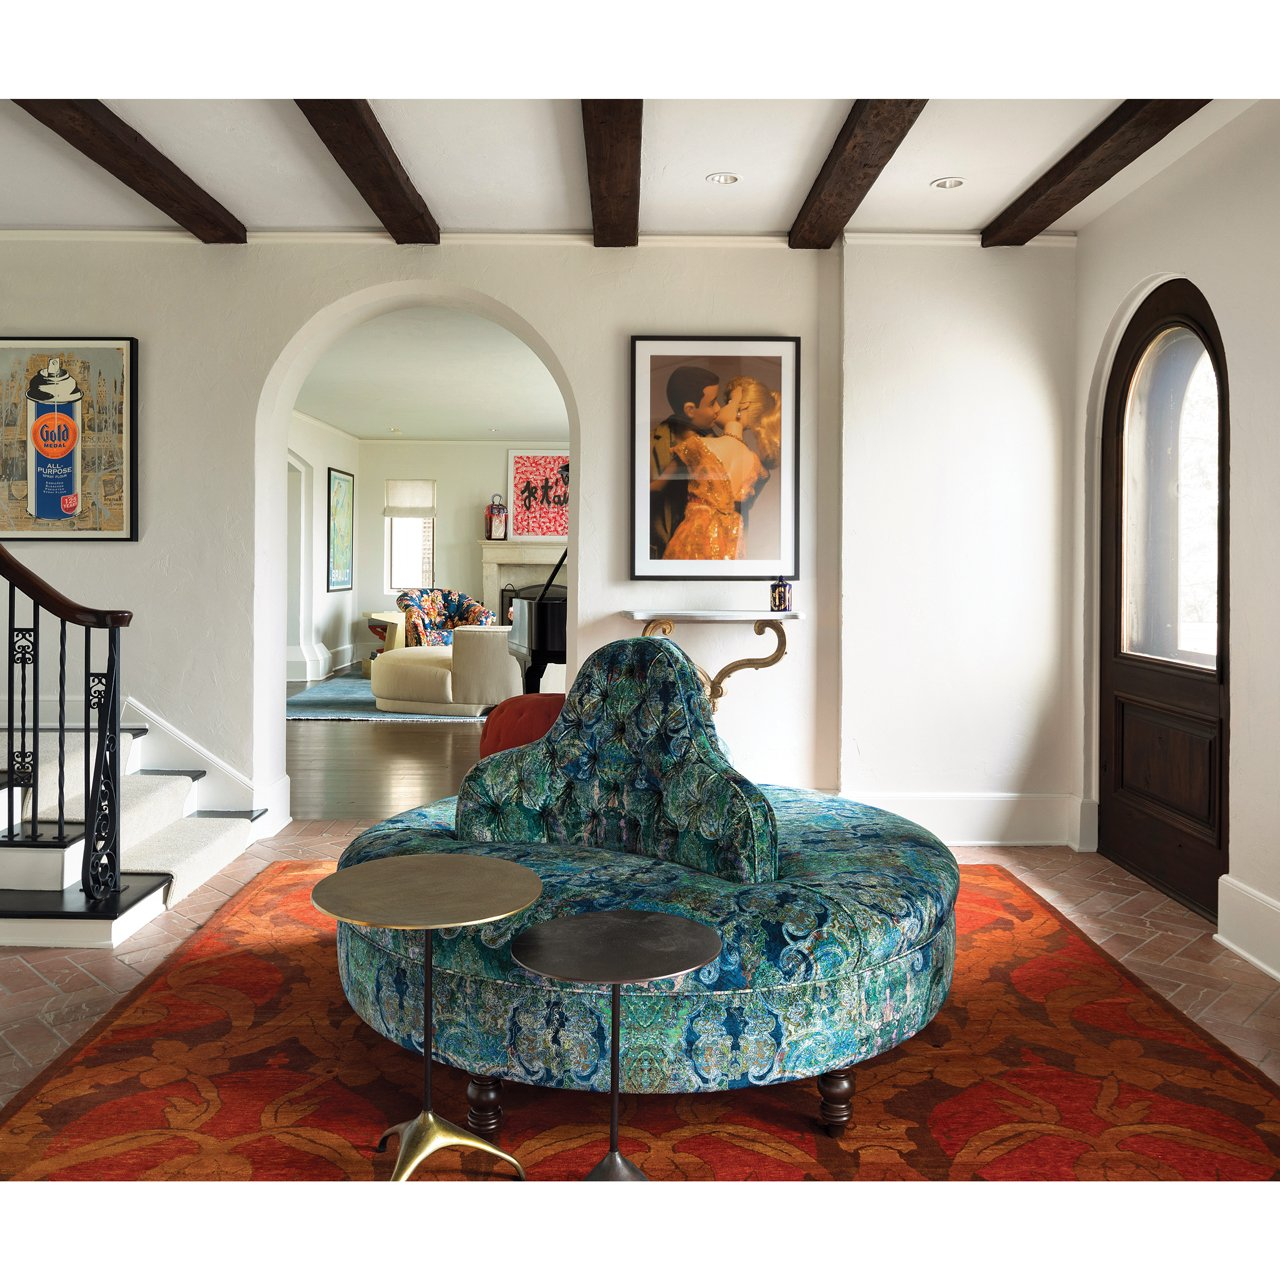 Home Tour Lake Harriet House With Spanish Style Decor Mpls St Paul Magazine